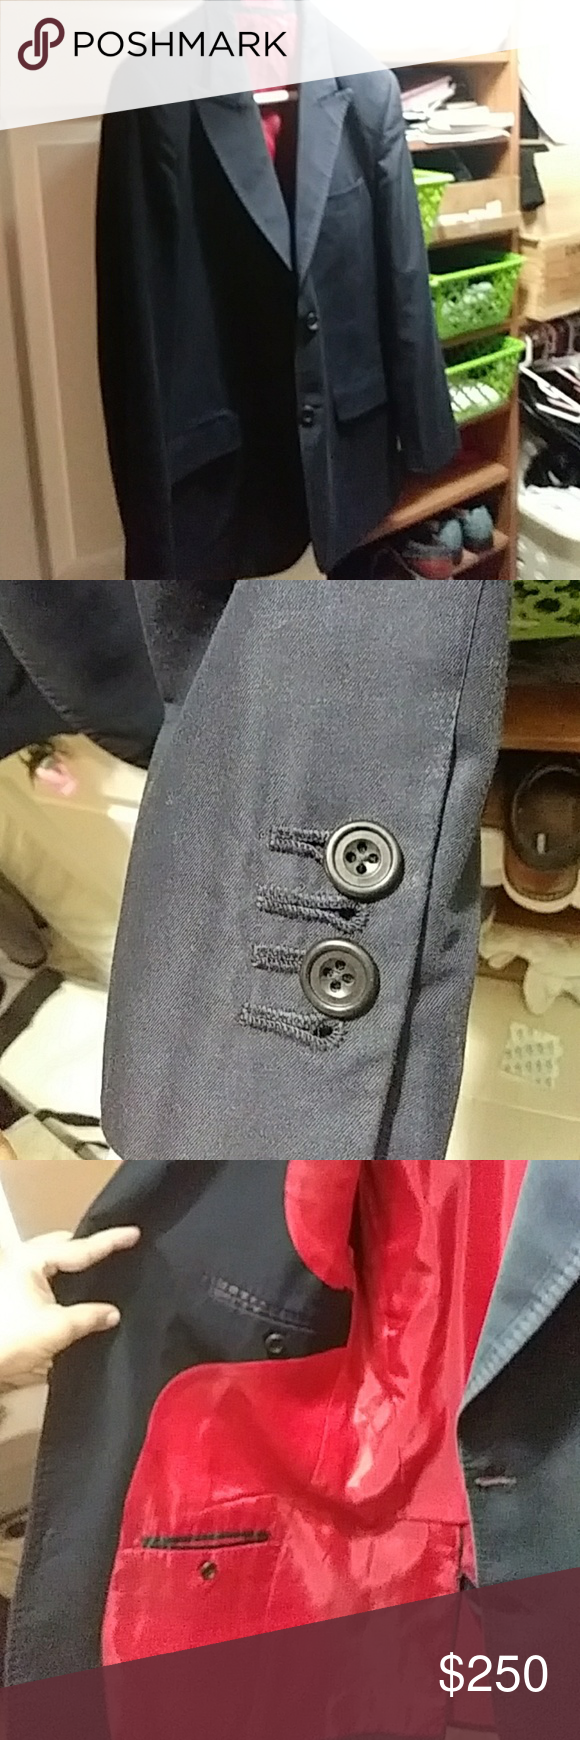 Blue Italian style suit with pants made in abudhab Size medium jacket with size 34 pants freddy of Abu Dhabi Suits & Blazers Suits